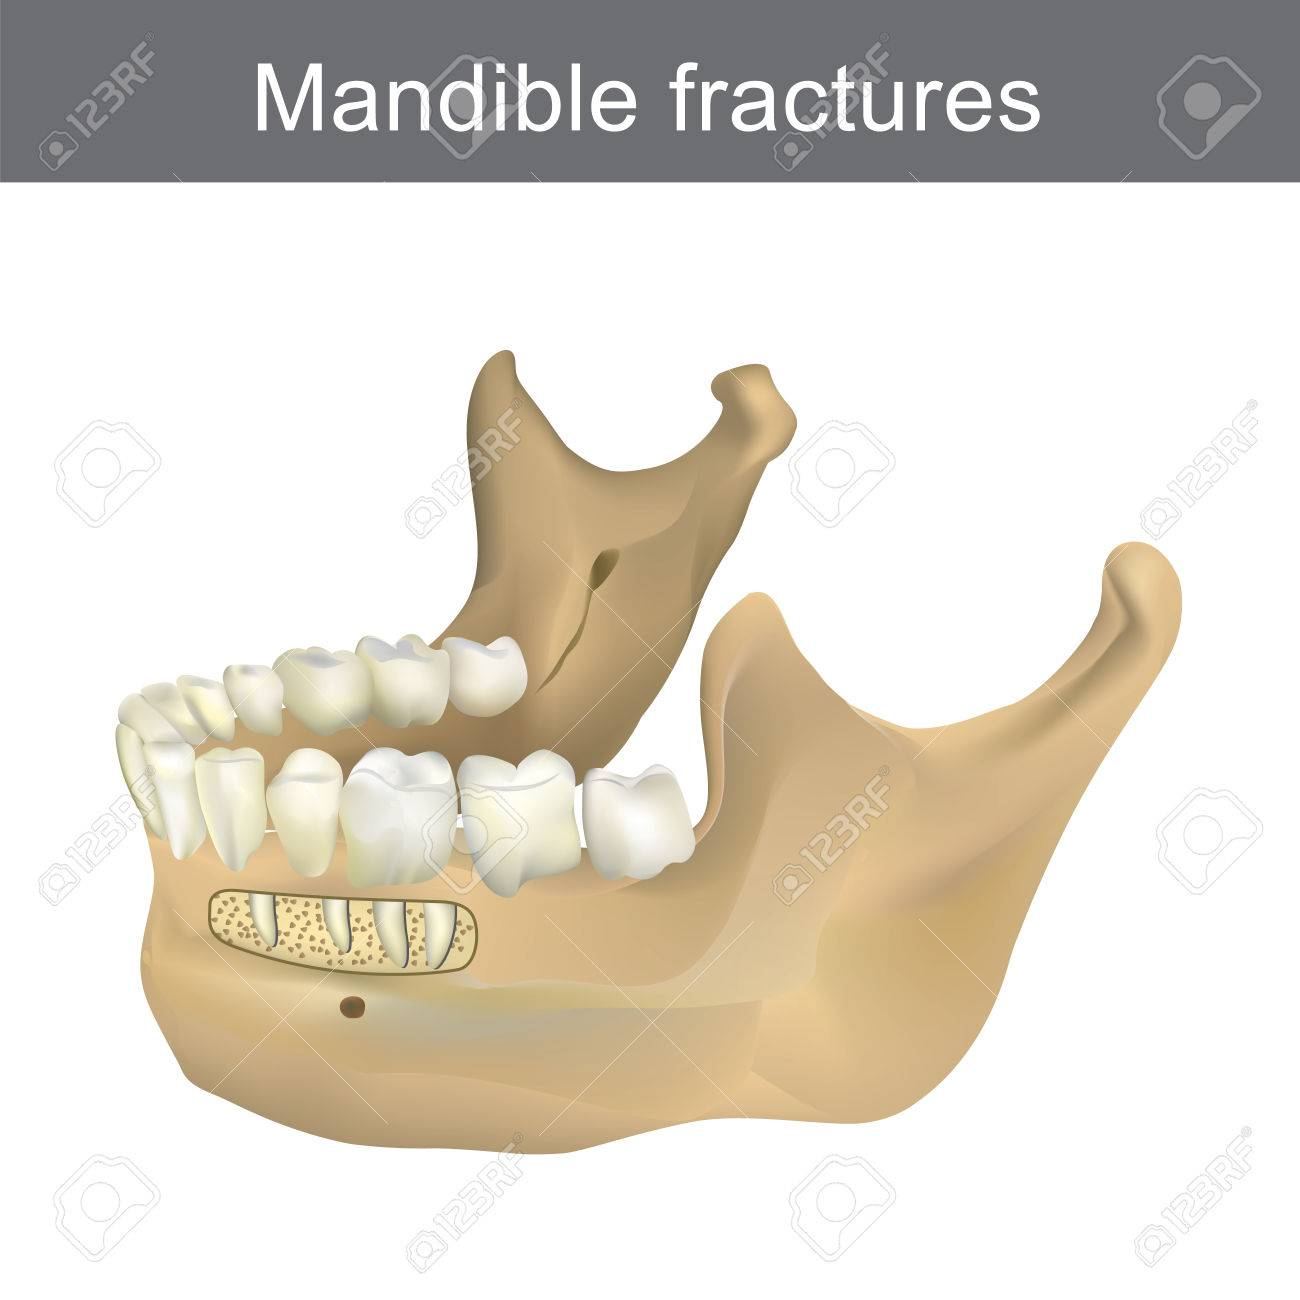 Mandible Fractures Is The Largest, Strongest And Lowest Bone ...